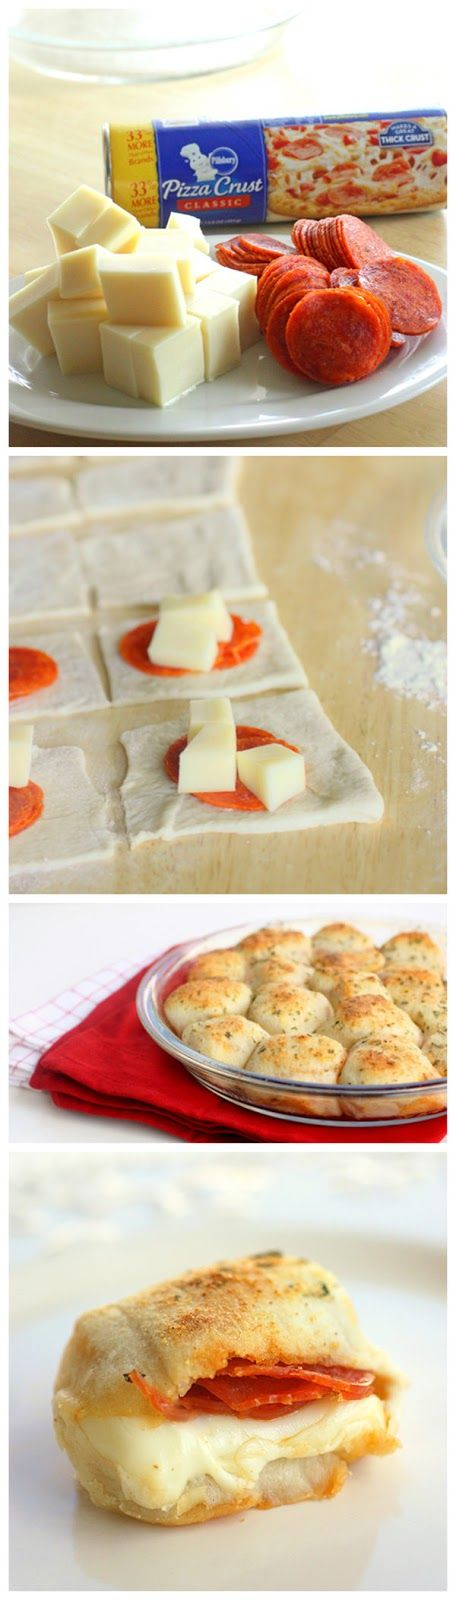 Stuffed Pizza Rolls - We LOVED these!! SO easy to do and super yummy ;) I used Pillsbury pizza dough, Great Value whole milk mozzarella, and...